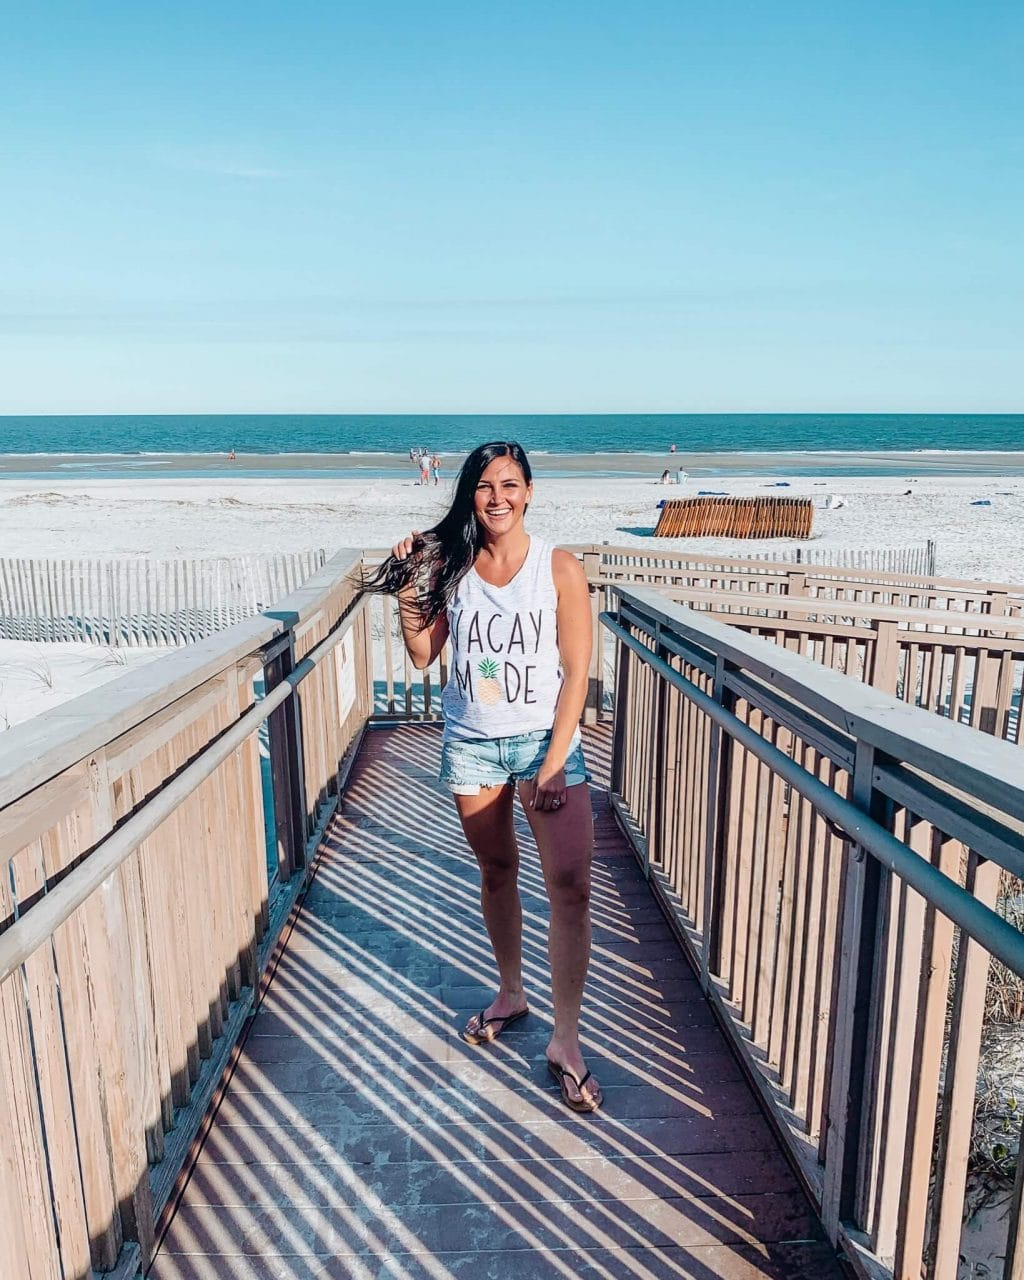 Instagram Fashion, Stilettos and Diapers, Molly Wey, Hilton Head Island South Carolina, HHI, Vacation Style